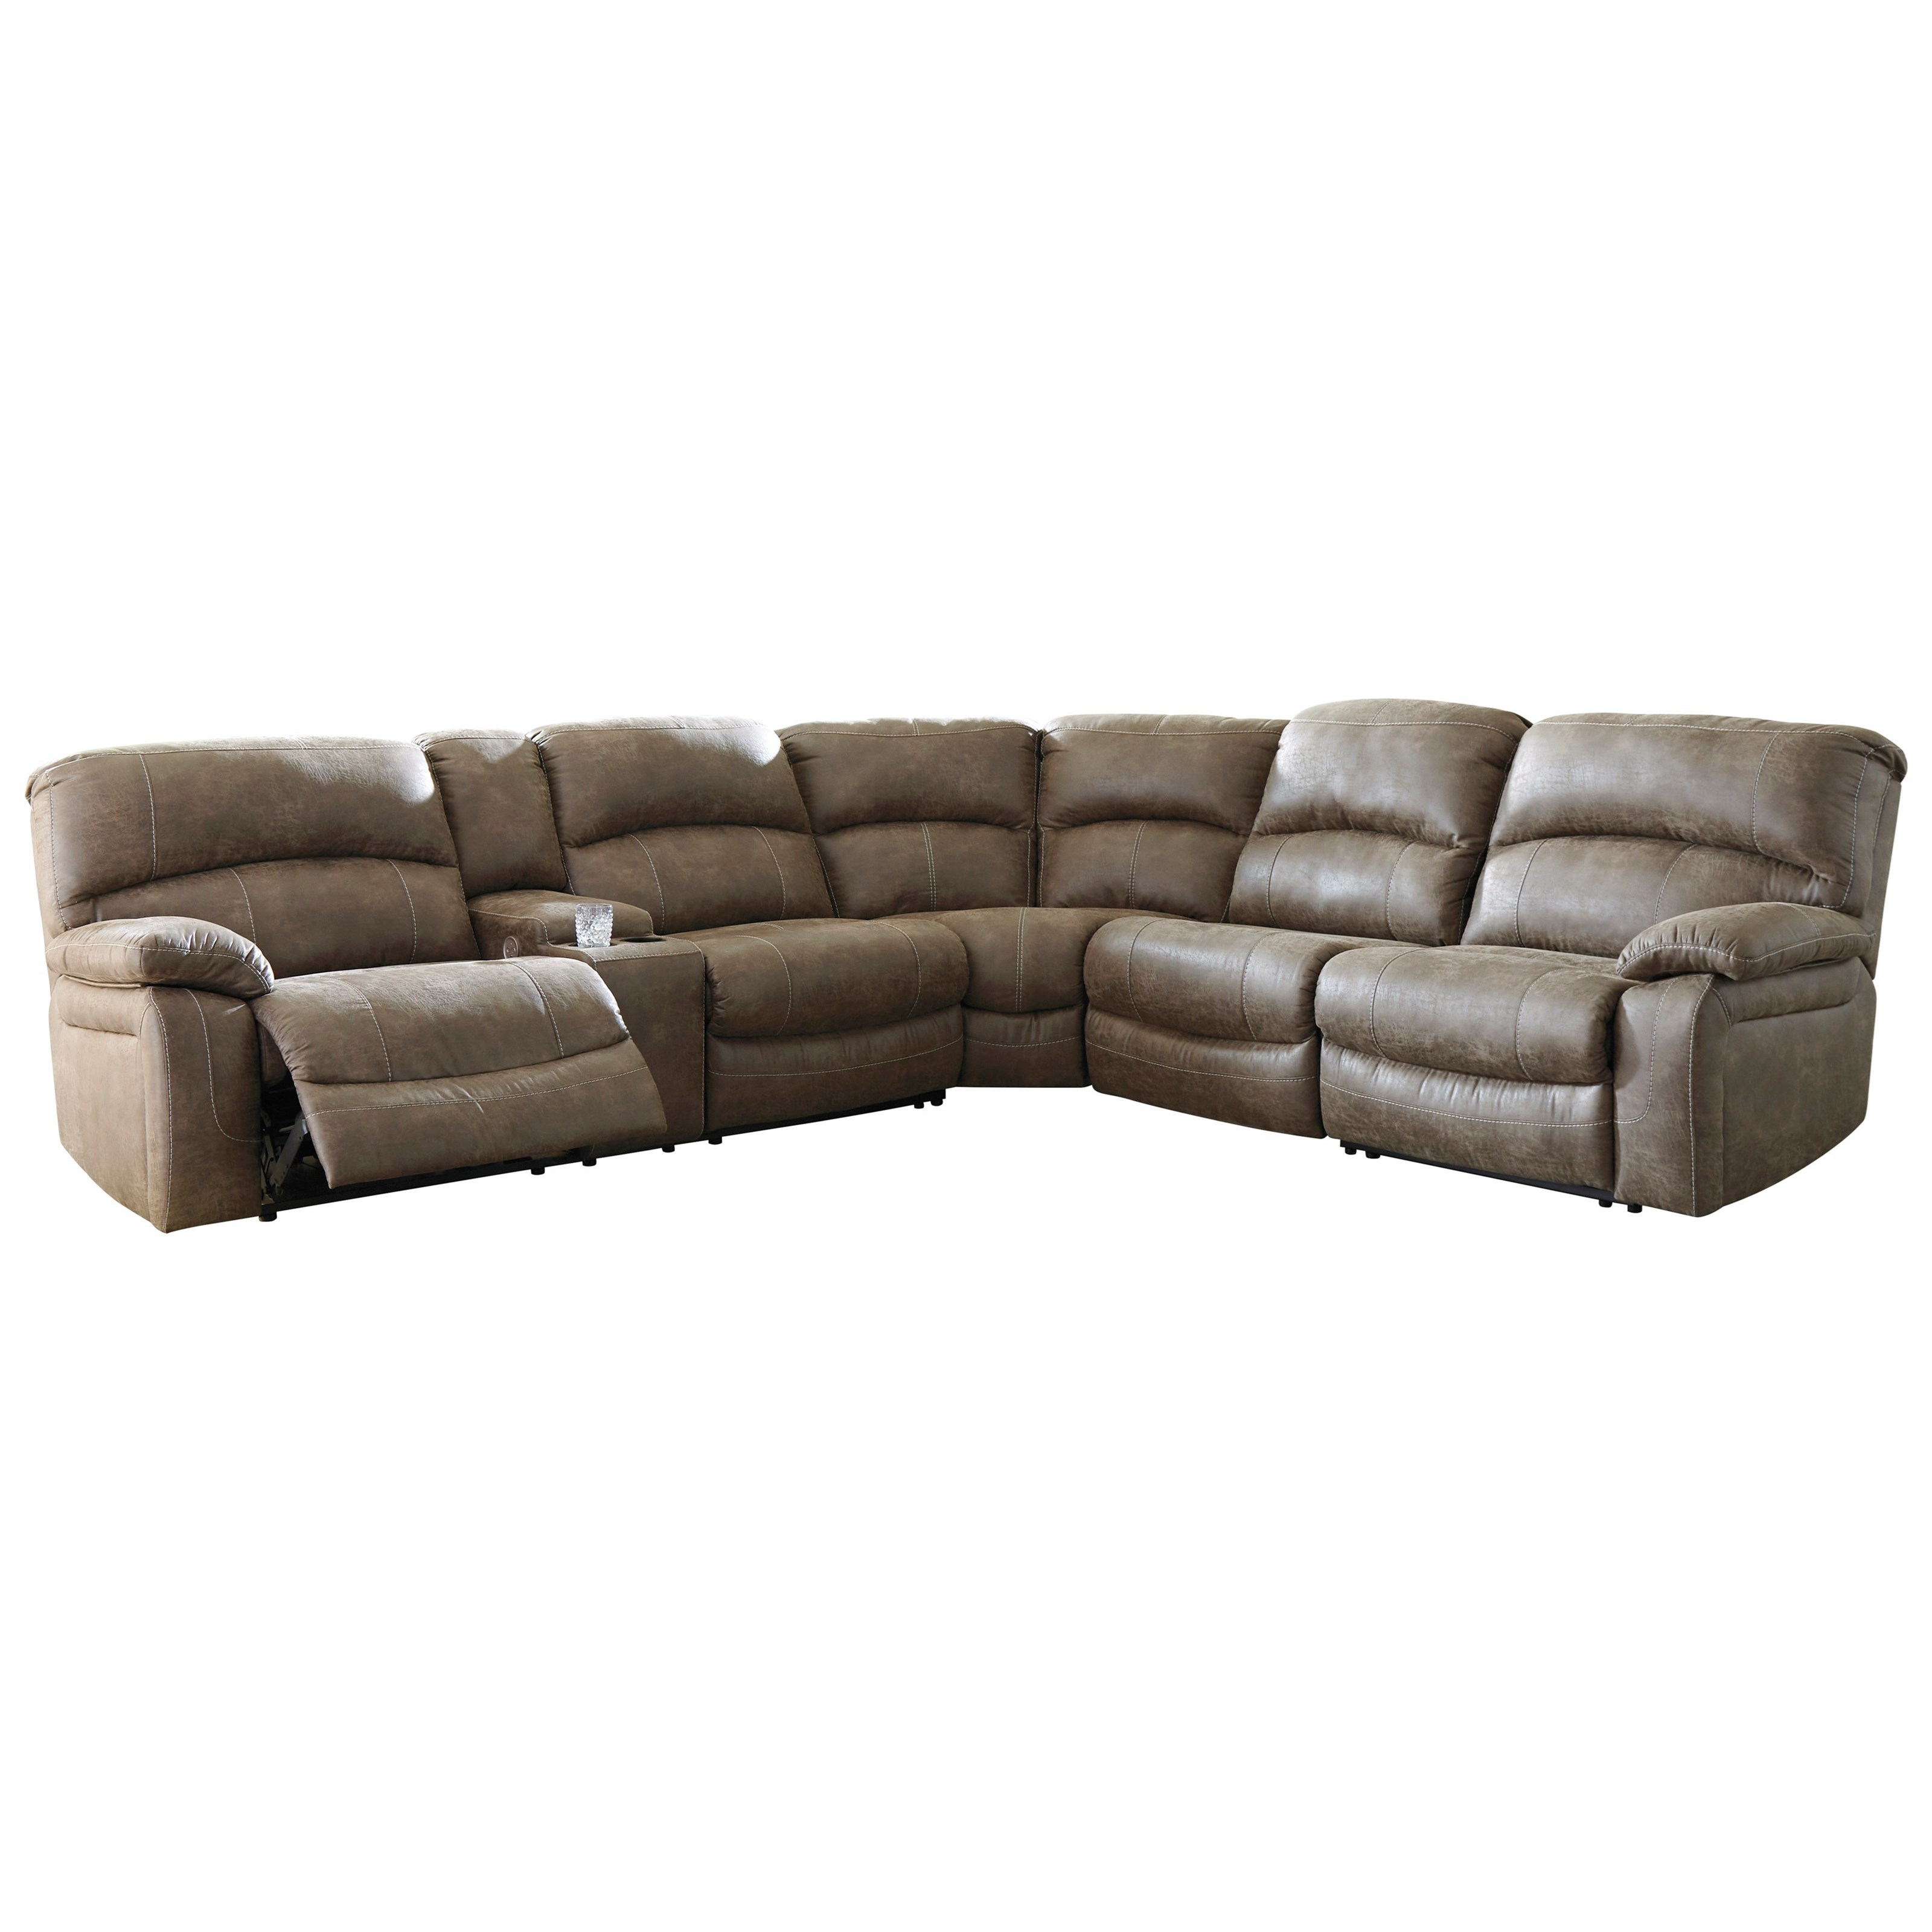 4-Piece Power Reclining Sectional